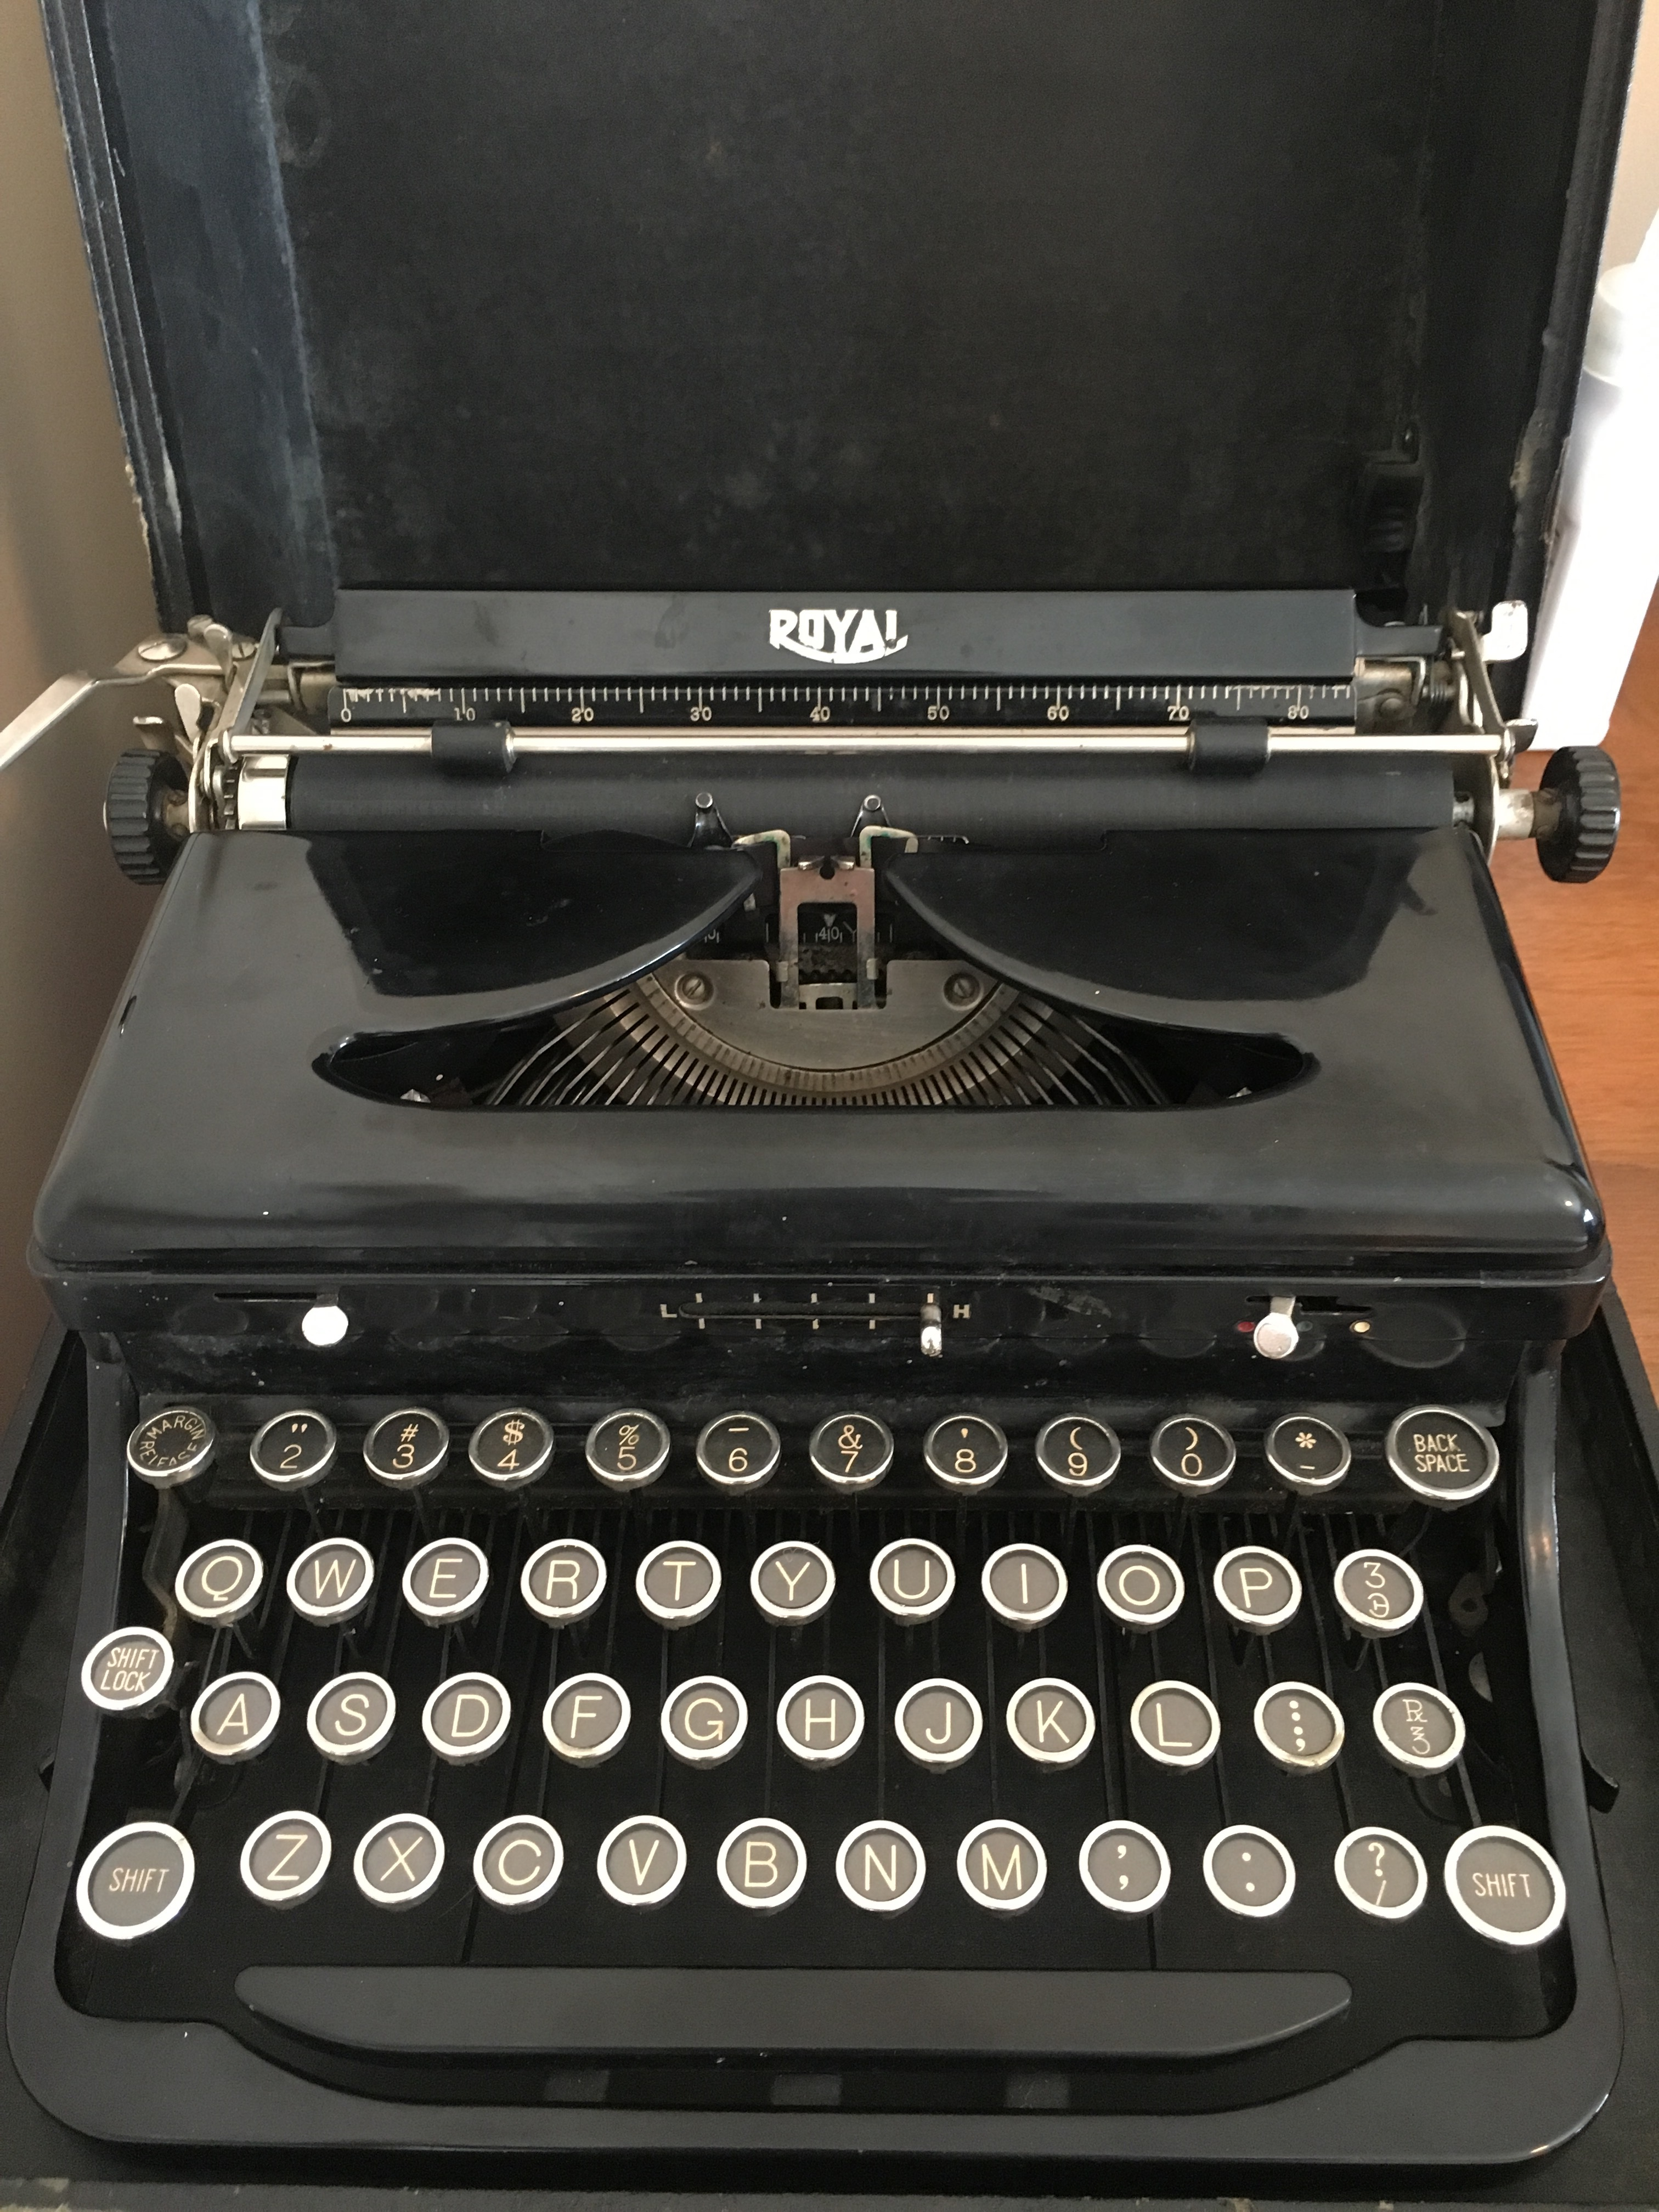 Use a vintage typewriter to type whatever you want up to 300 words